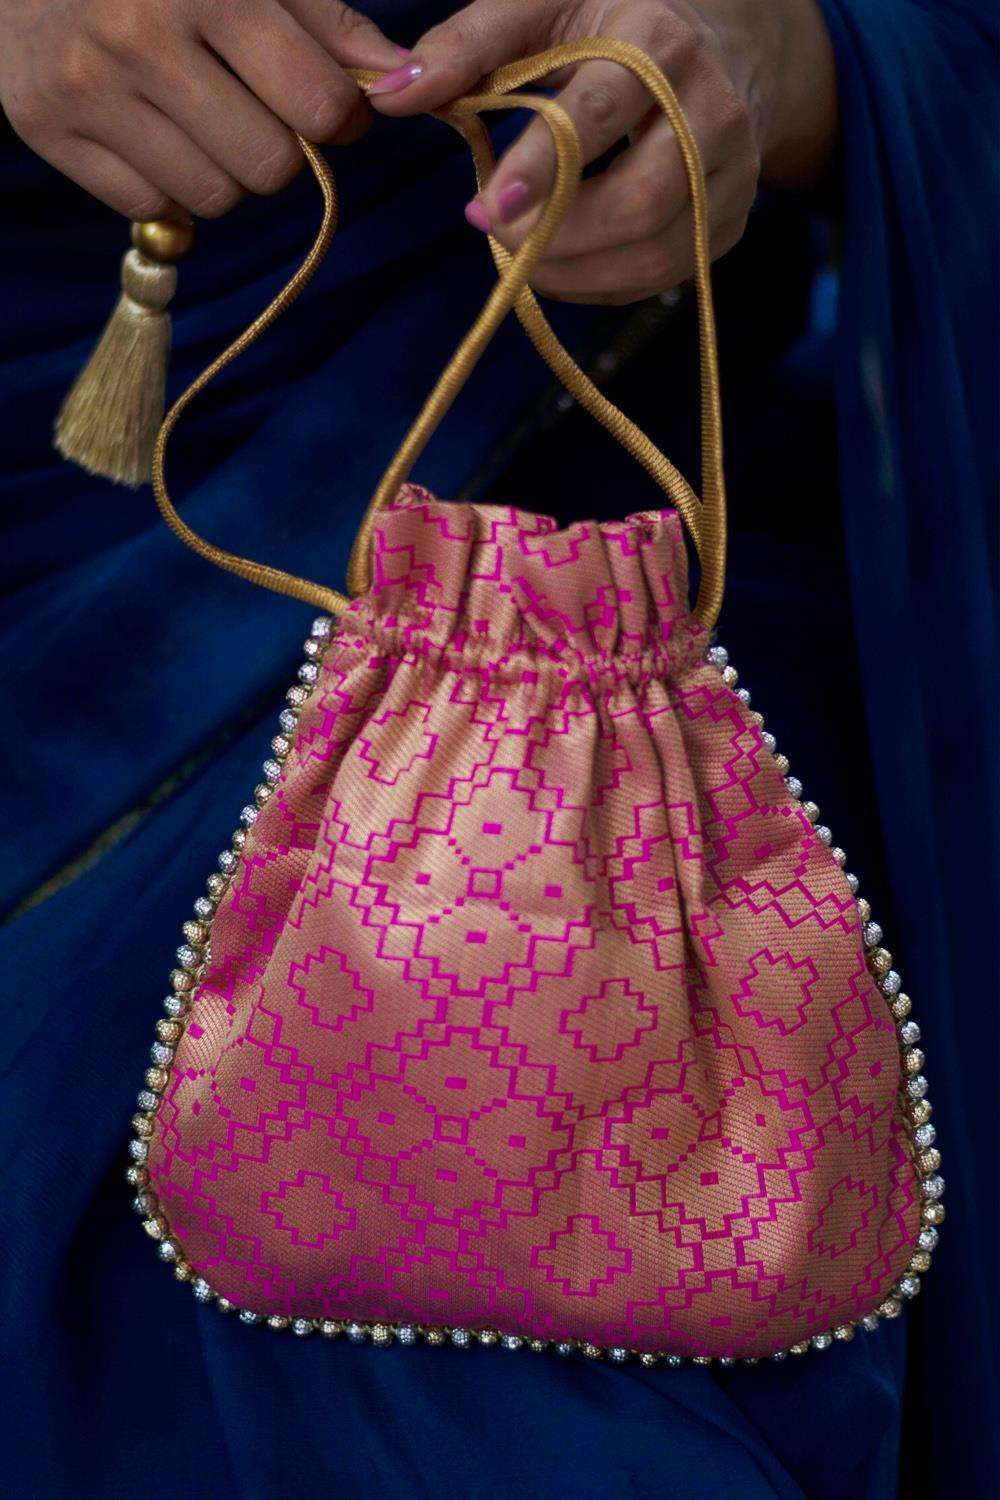 Pink and gold brocade Potli bag with silver and gold bead detailing